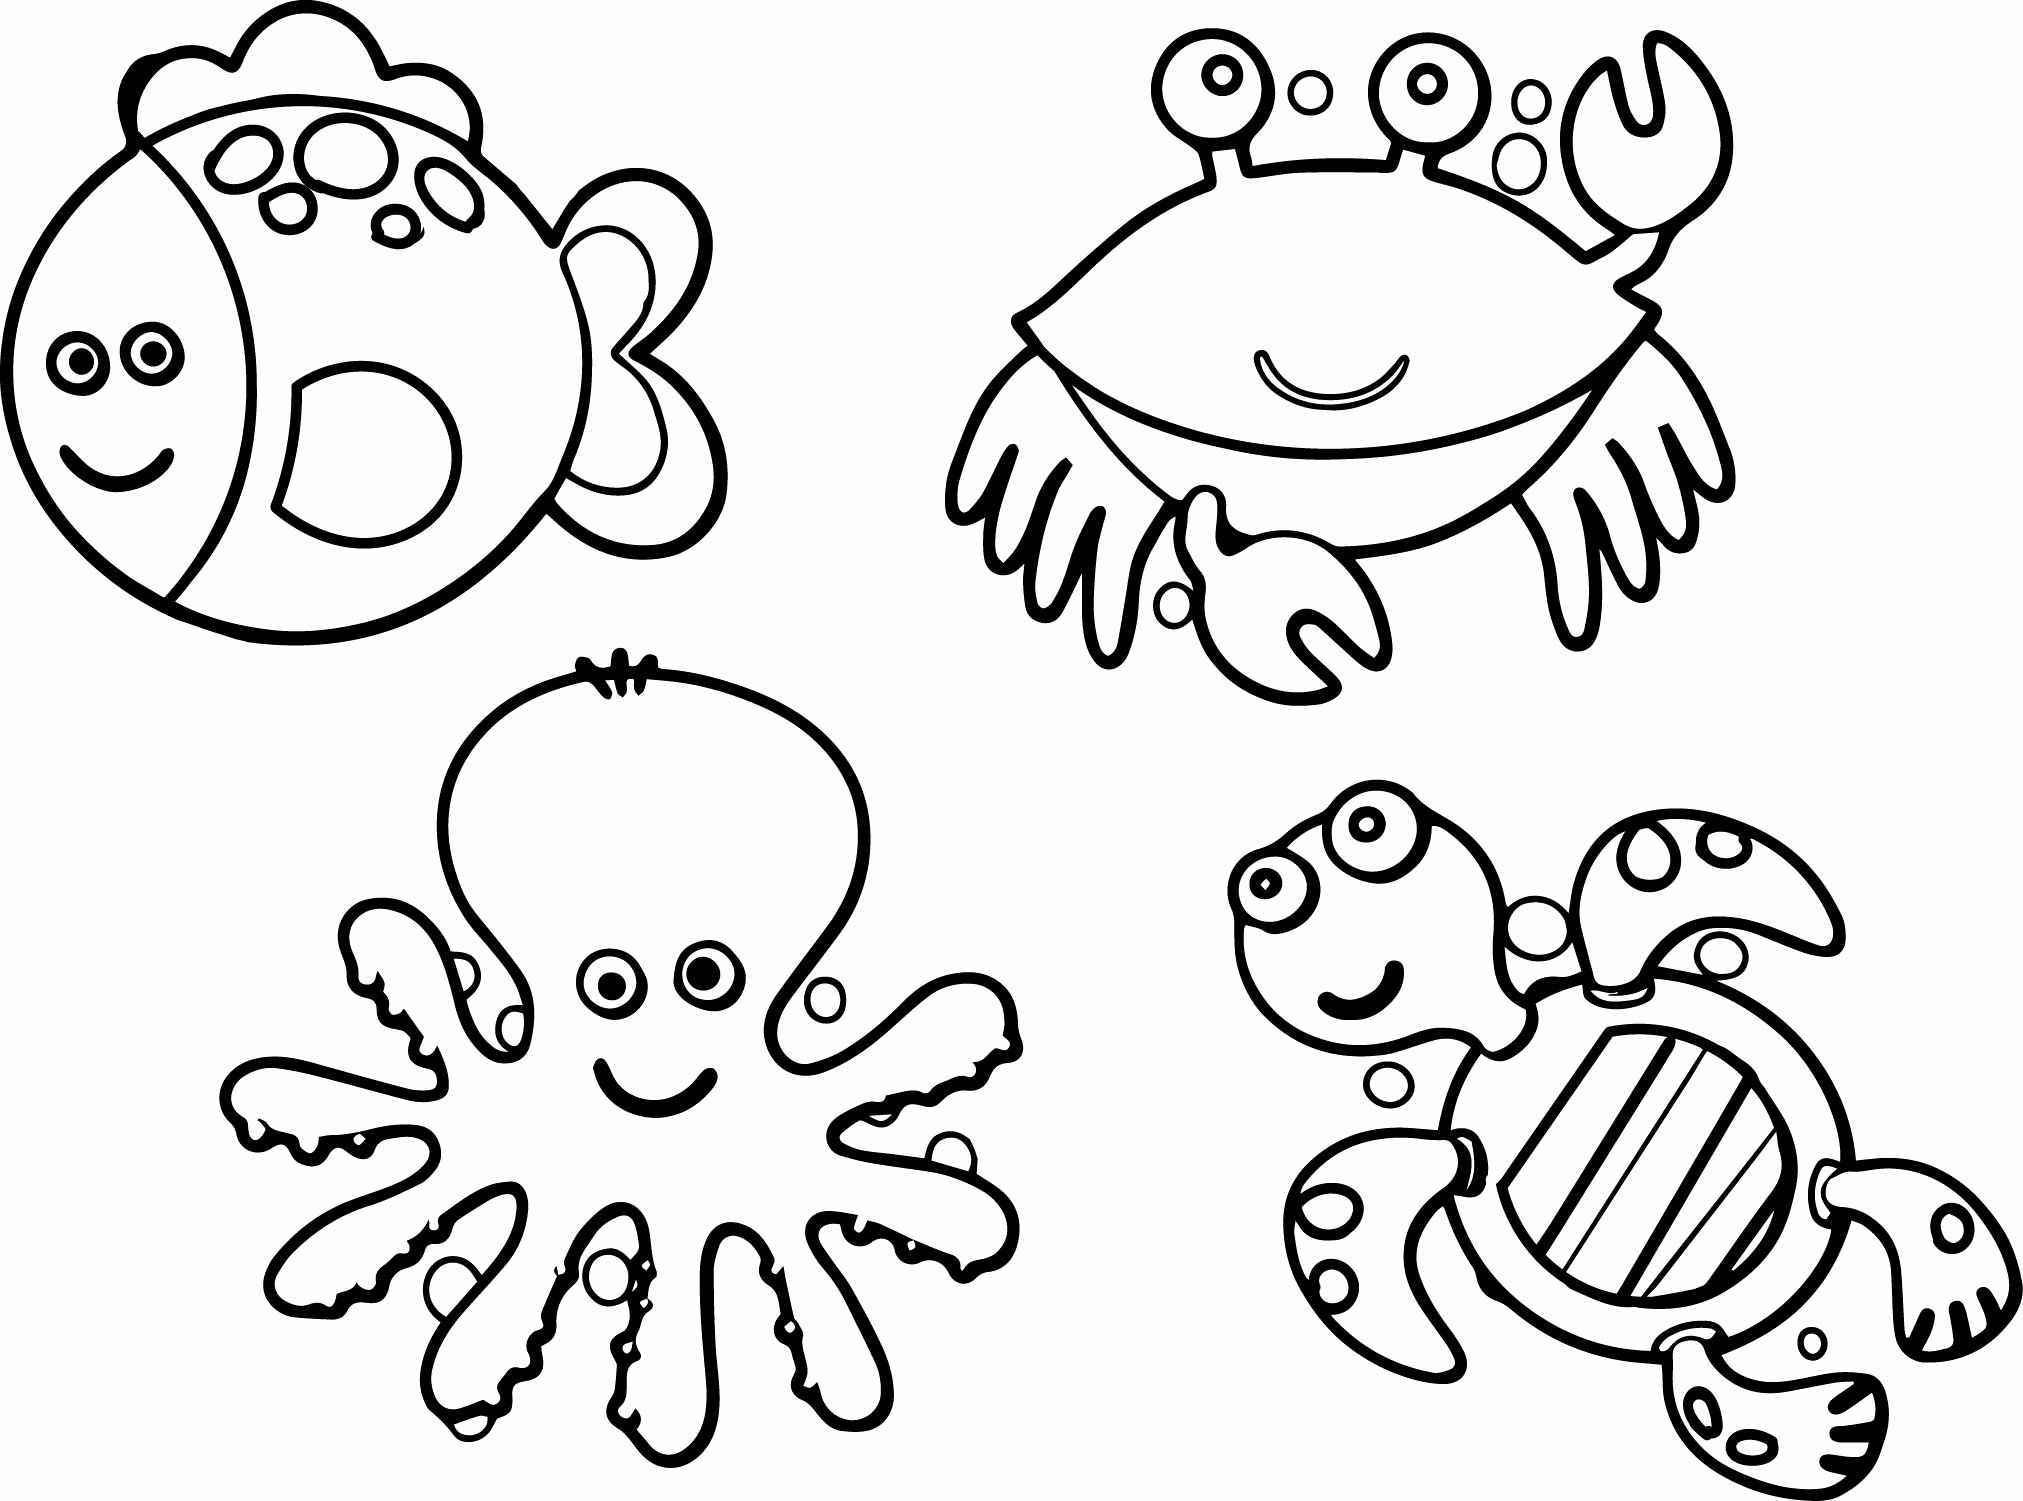 Animal Coloring Pages to Print 7r - Free For Children